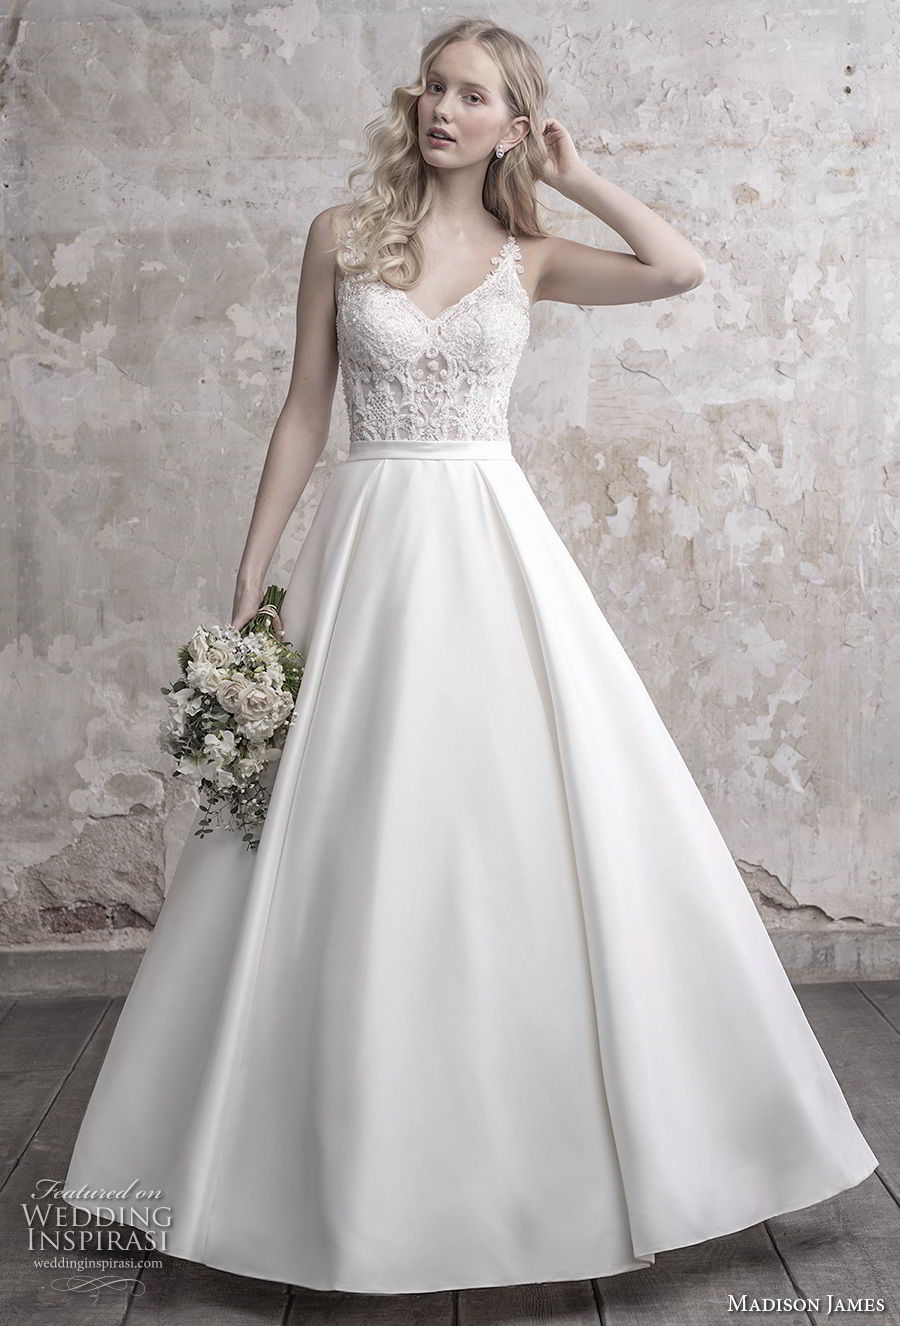 madison james fall 2018 bridal spaghetti strap diamond neck heavily embellished bodice satin skirt romantic a line wedding dress full lace back long train (9) mv